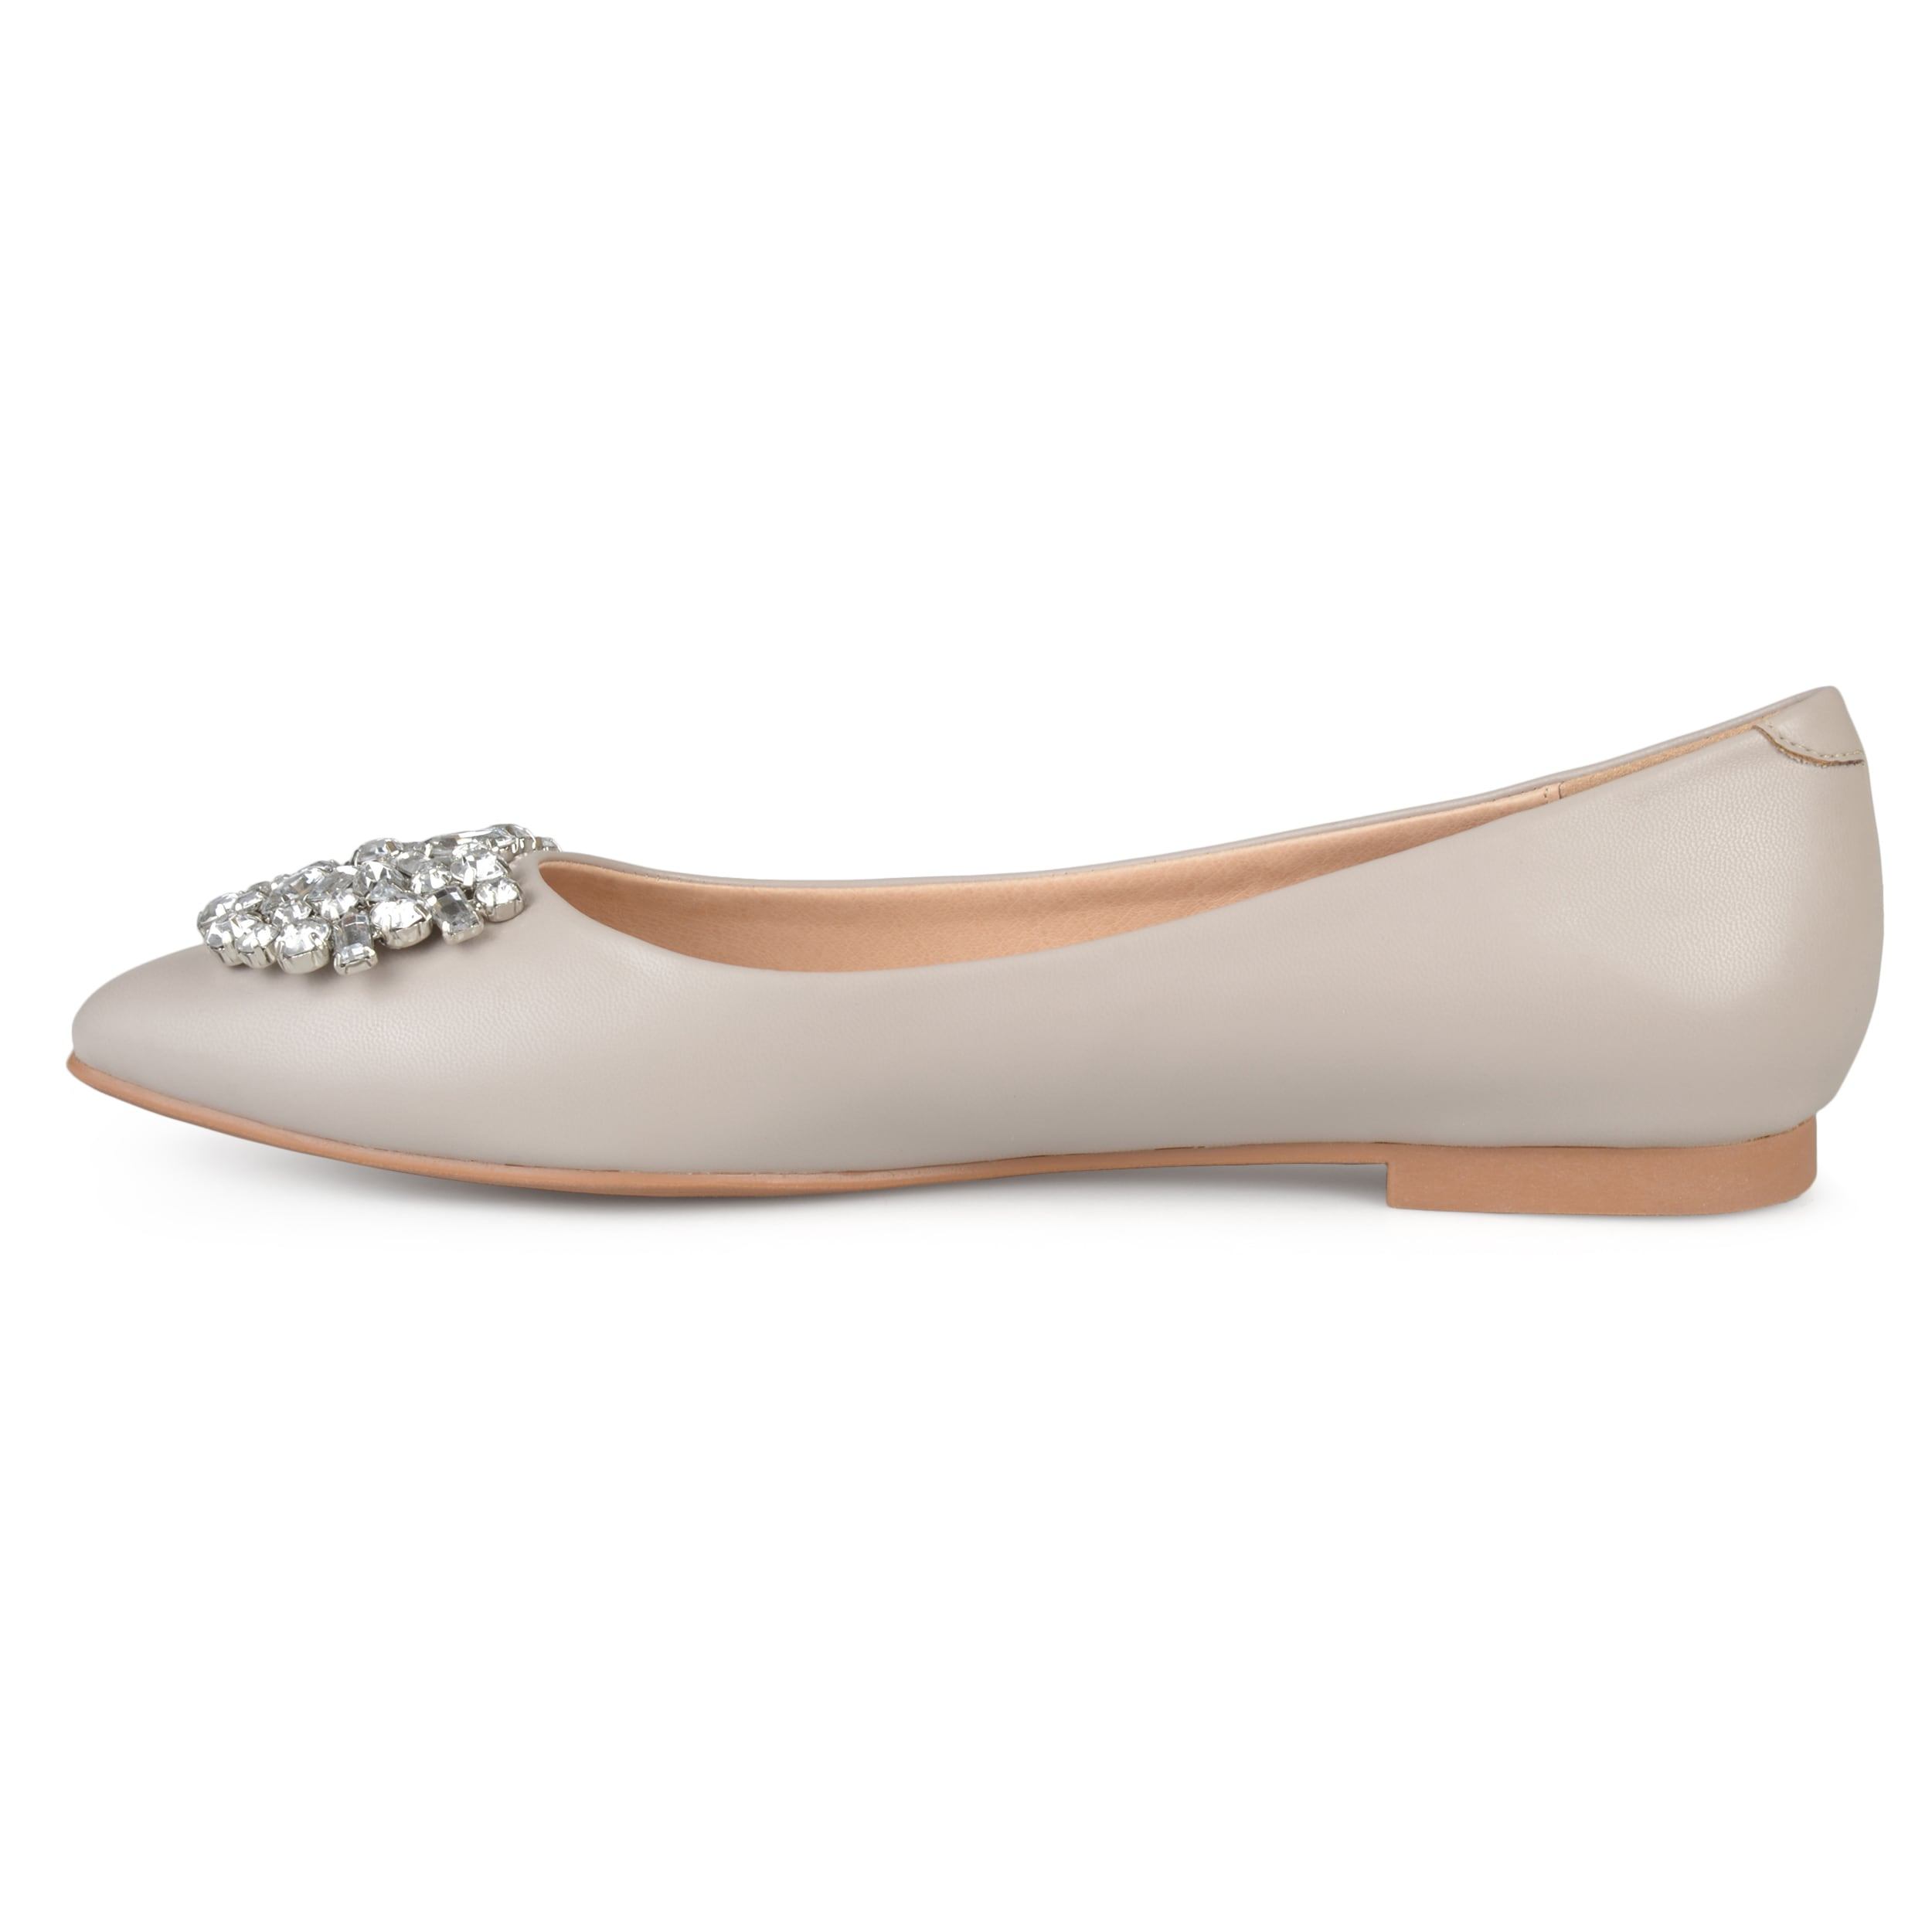 57c578d9c Shop Journee Collection Women's 'Renzo' Pointed Toe Jewel Faux Leather Flats  - Free Shipping On Orders Over $45 - Overstock - 16747865